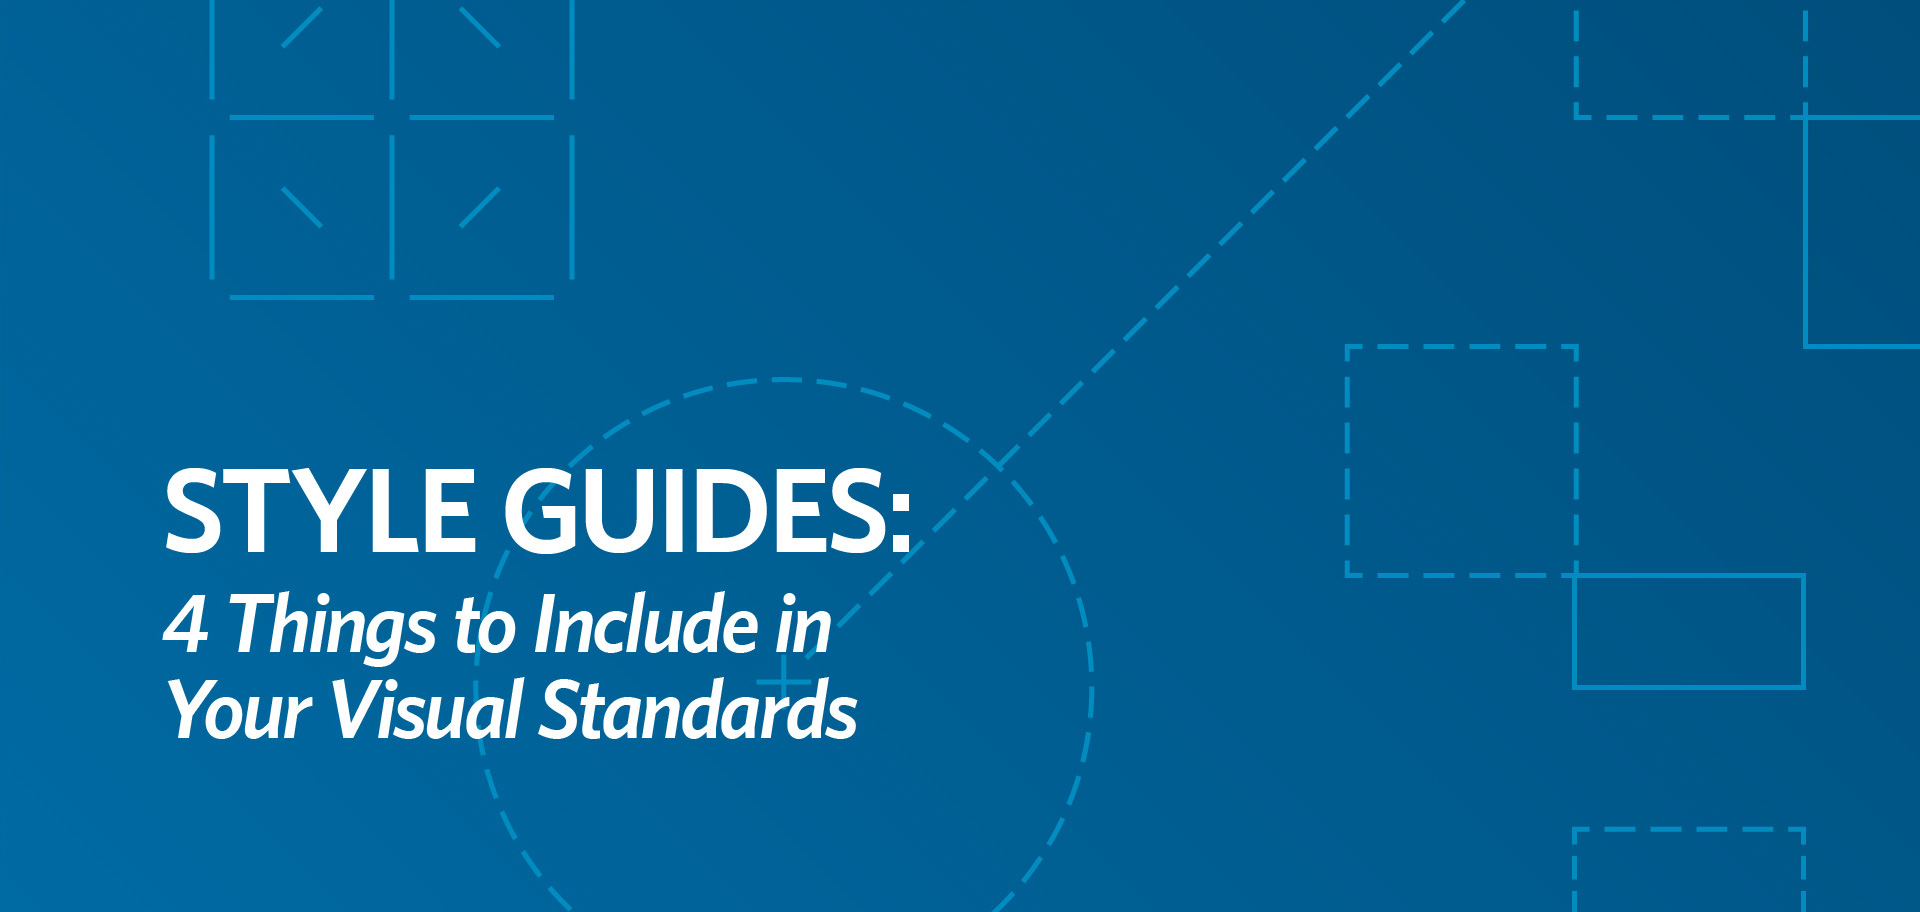 style guide, visual standards, brand standards, visual identity style guide Style Guide: 4 Things to Include in Your Visual Standards style guides fi